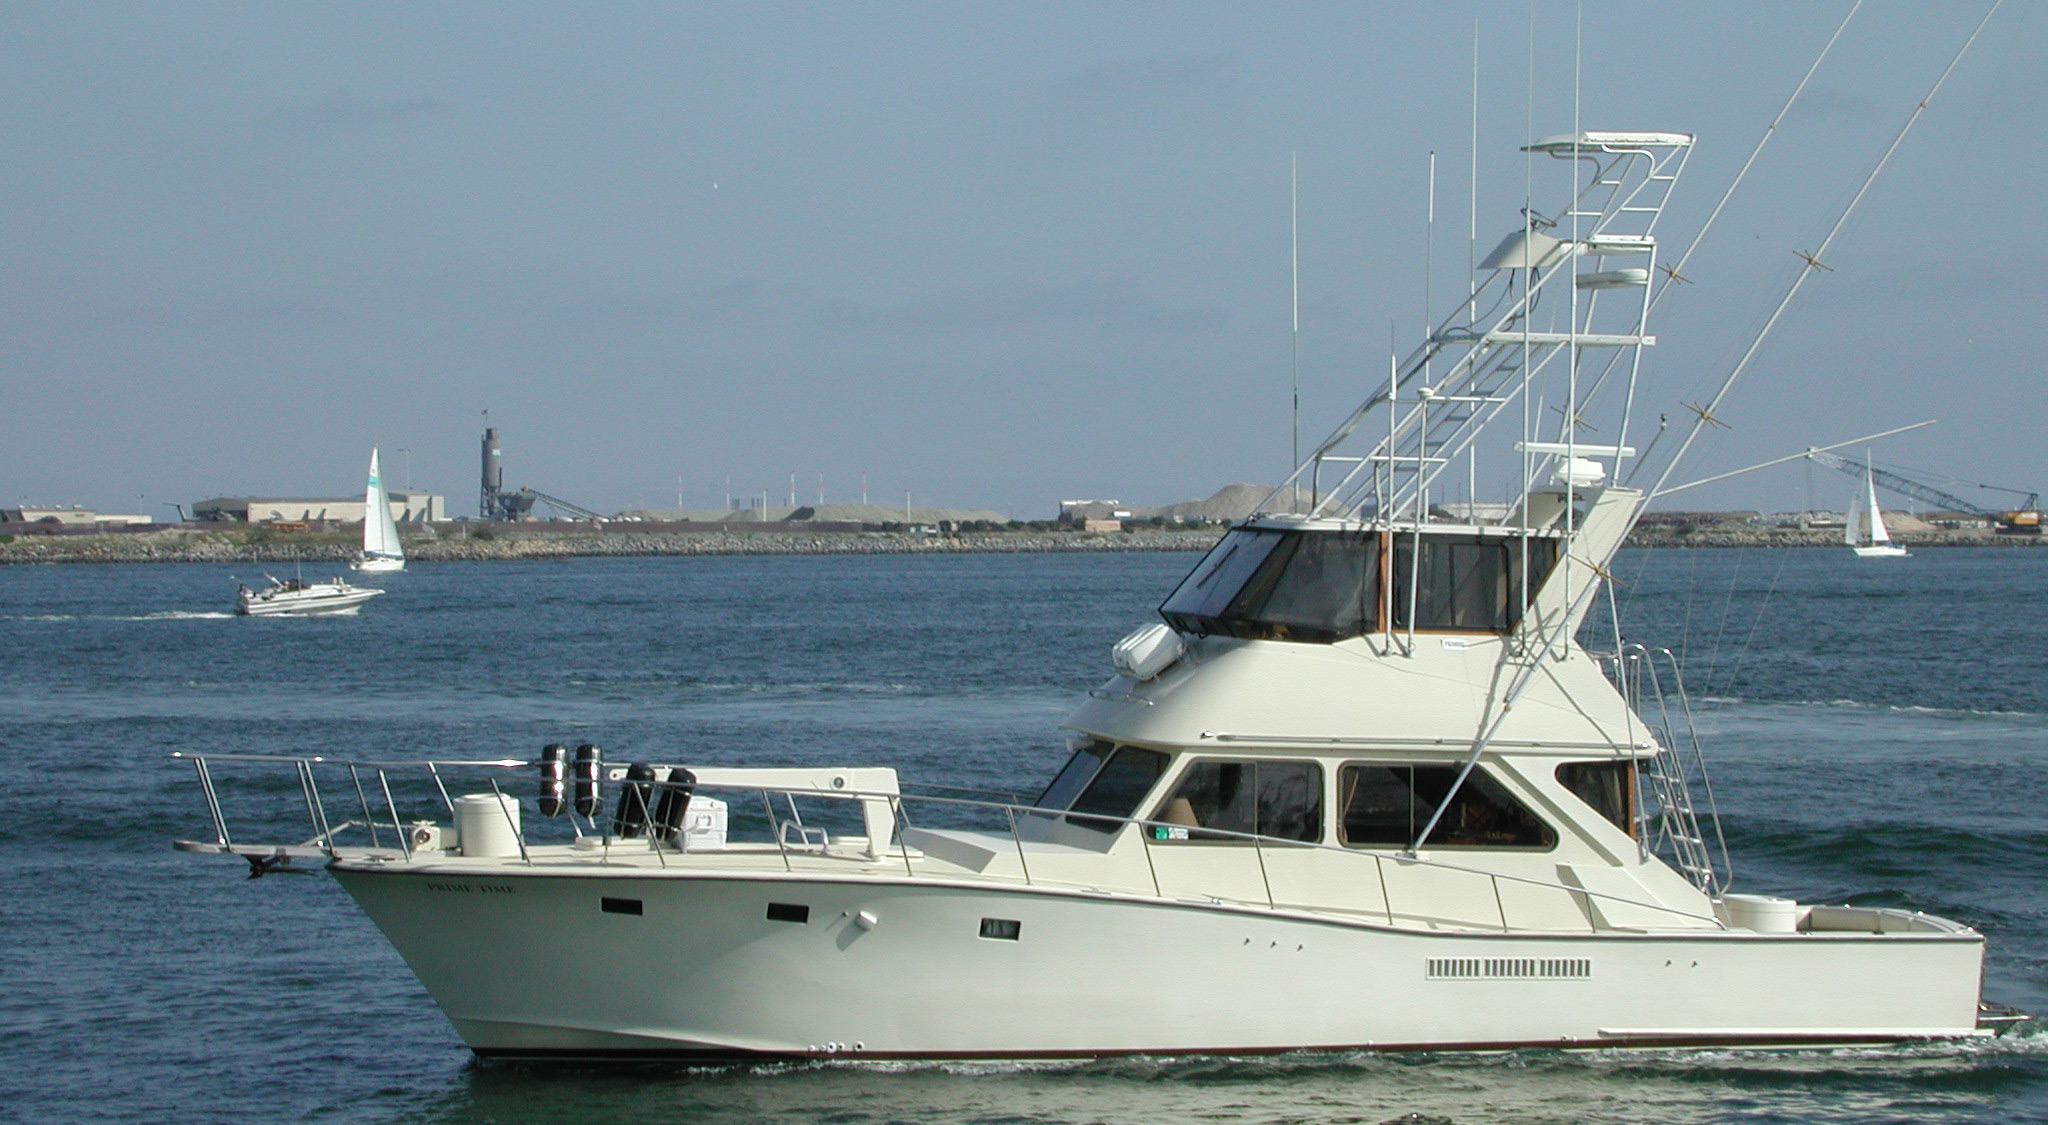 Sportfishing san diego concierge deep sea fishing spot for Deep sea fishing san diego